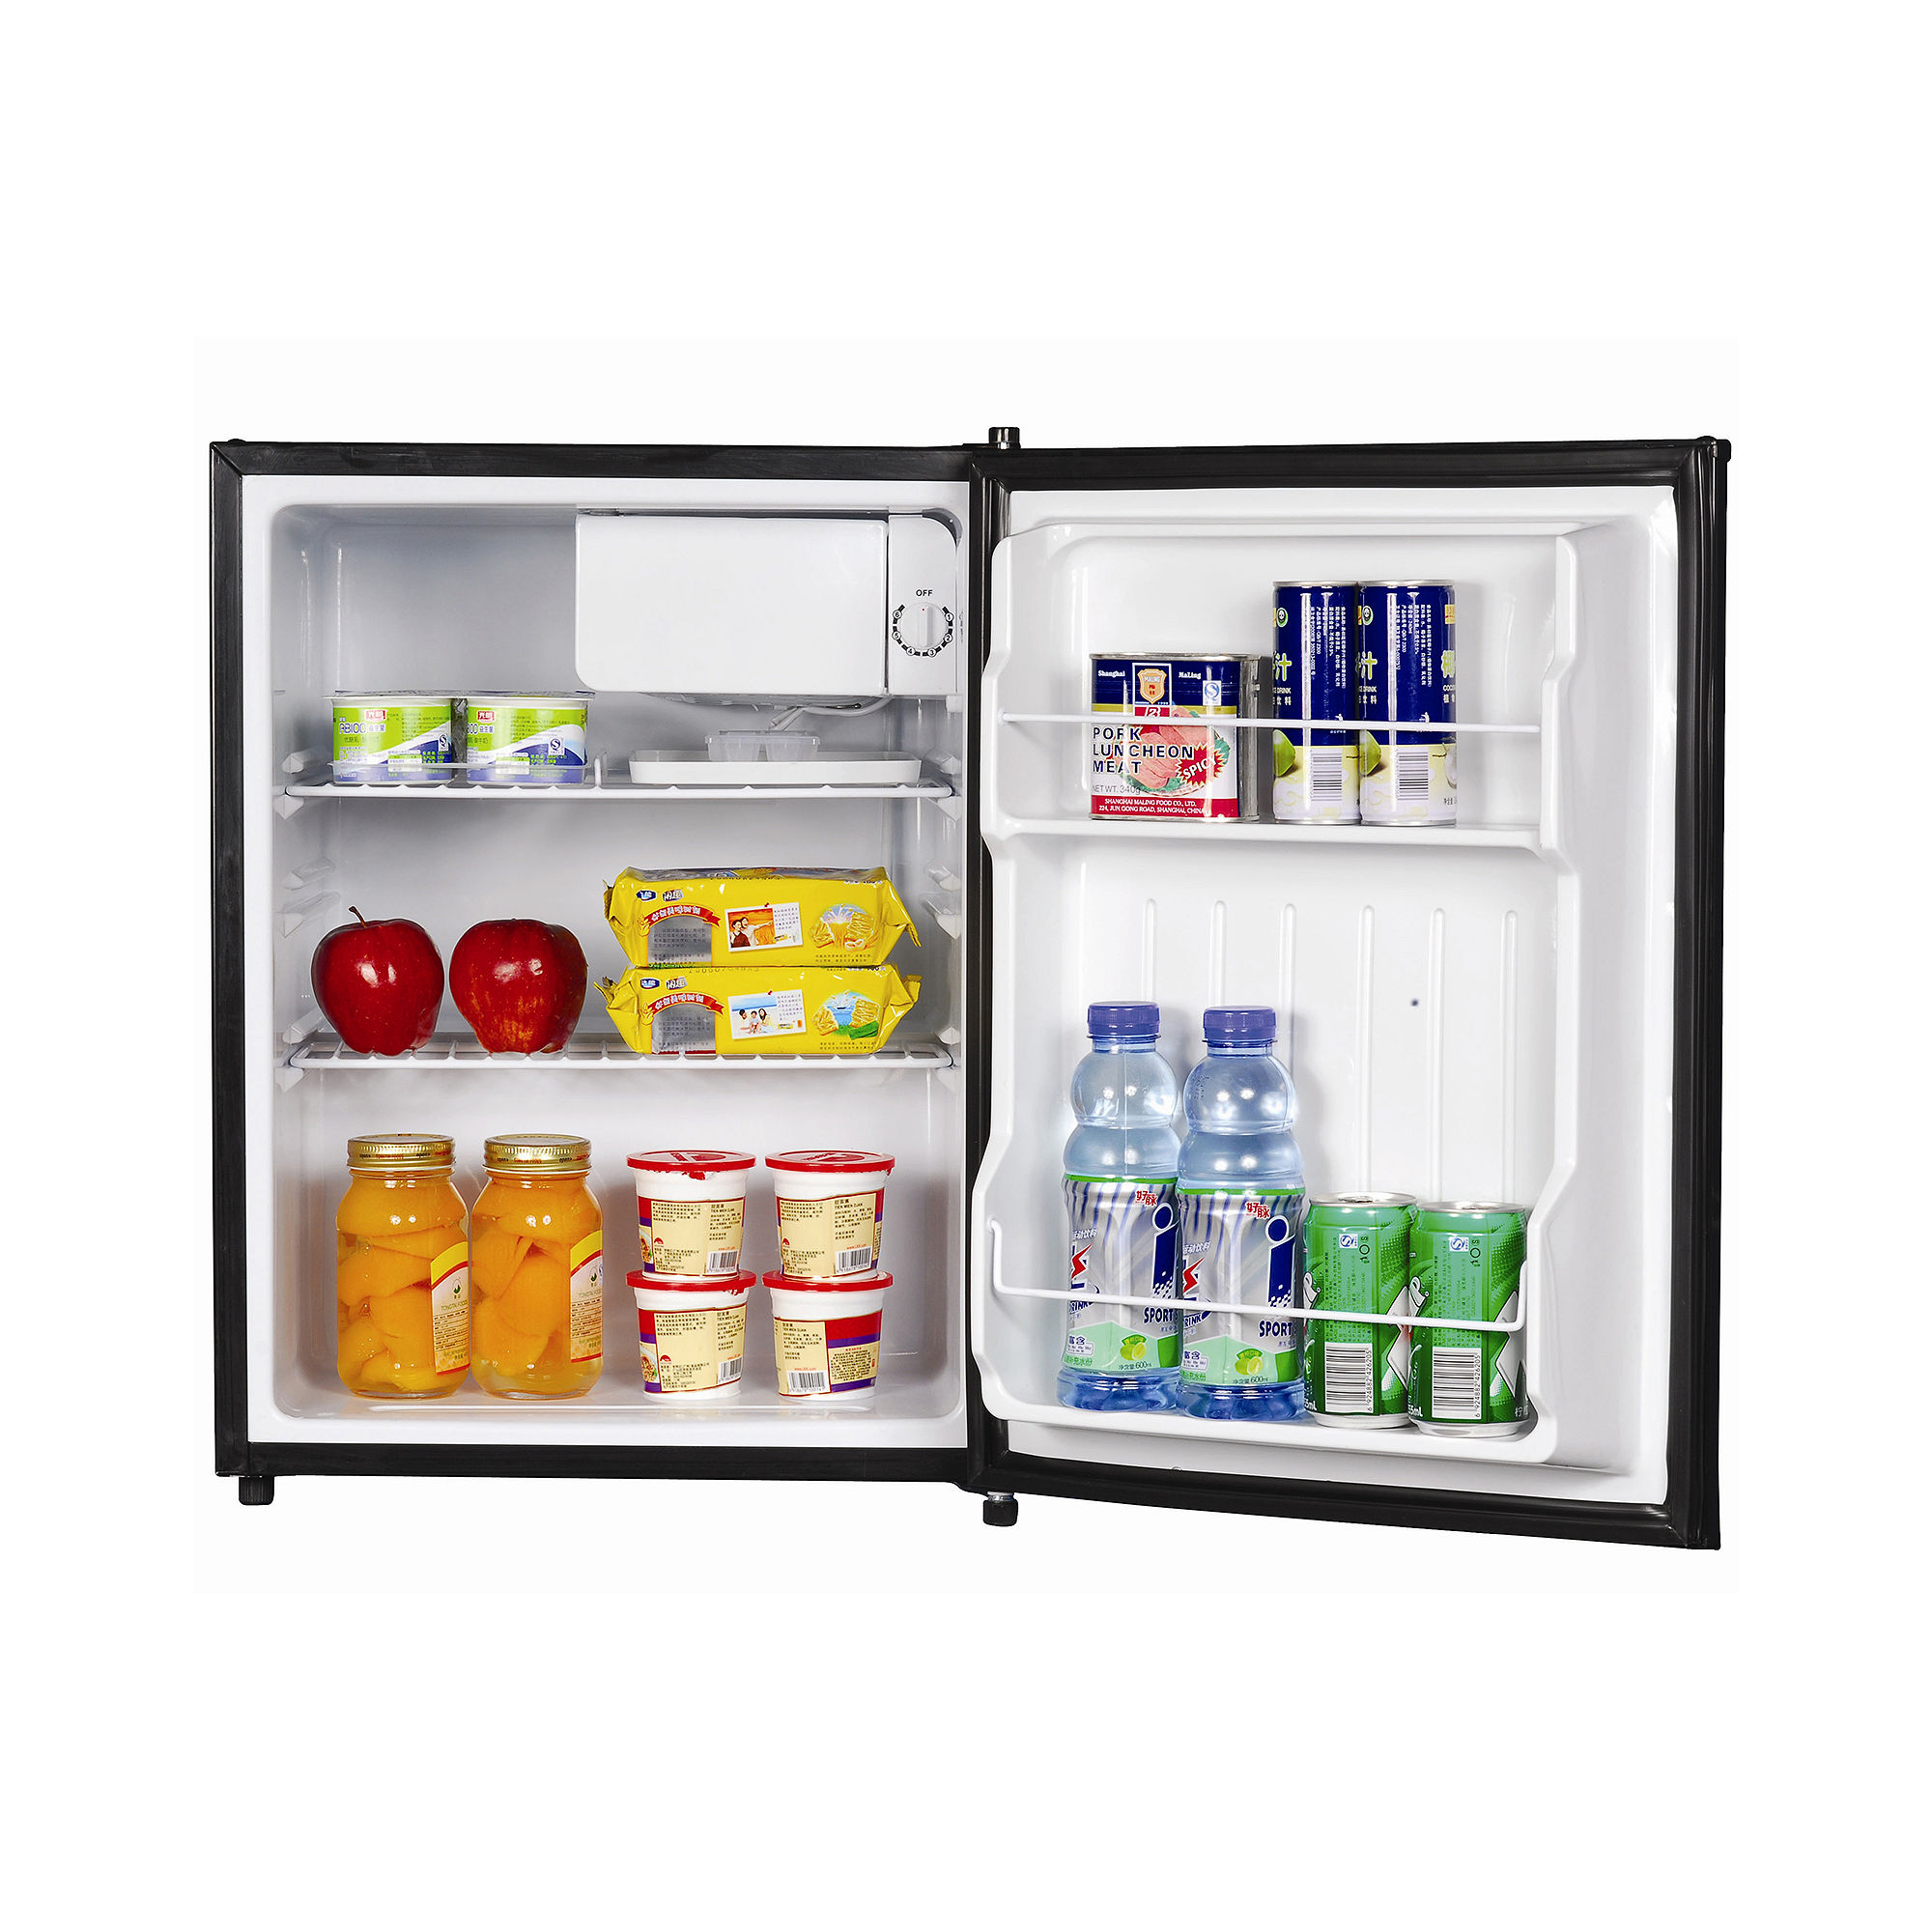 2.4 Compact Fridge with Freezer Stainless Steel